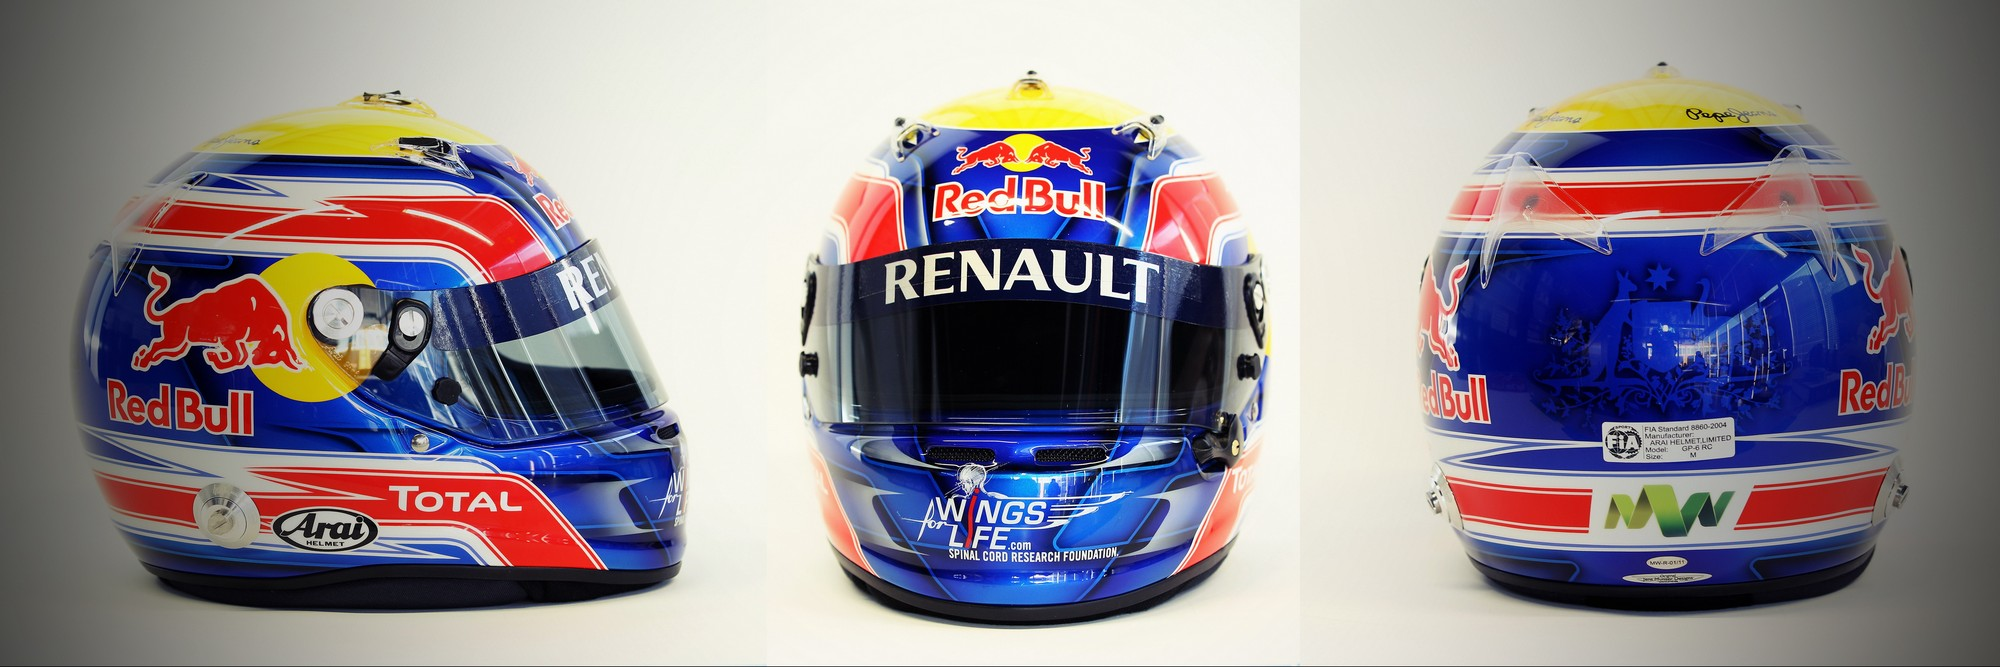 Шлем Марка Уэббера на сезон 2011 года | 2011 helmet of Mark Webber